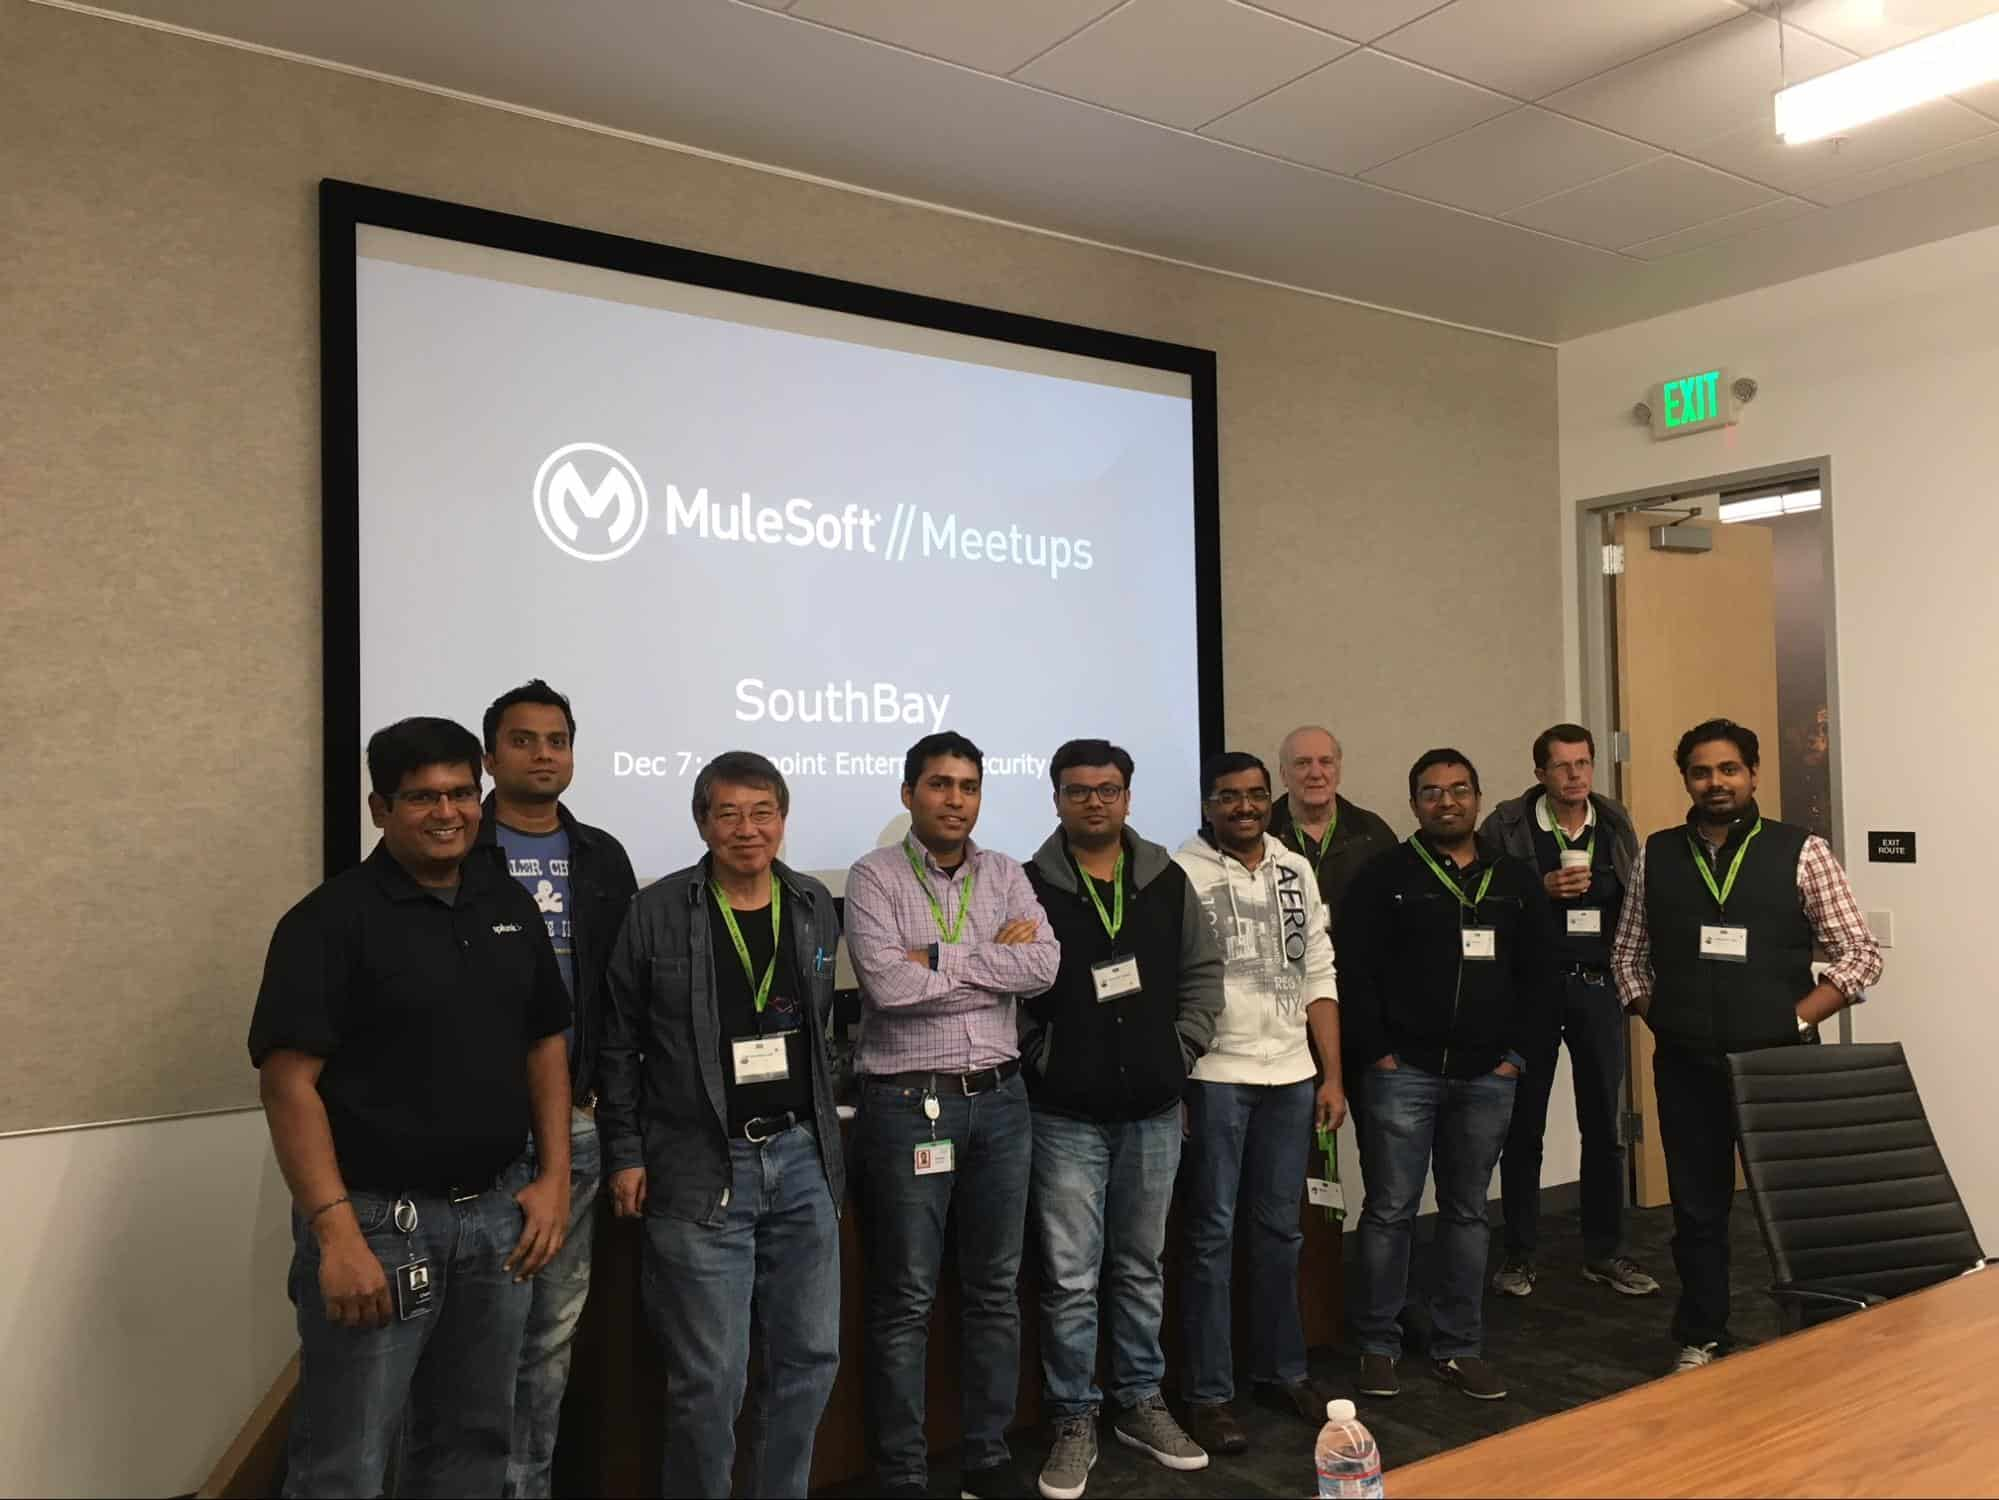 southbay mulesoft meetup